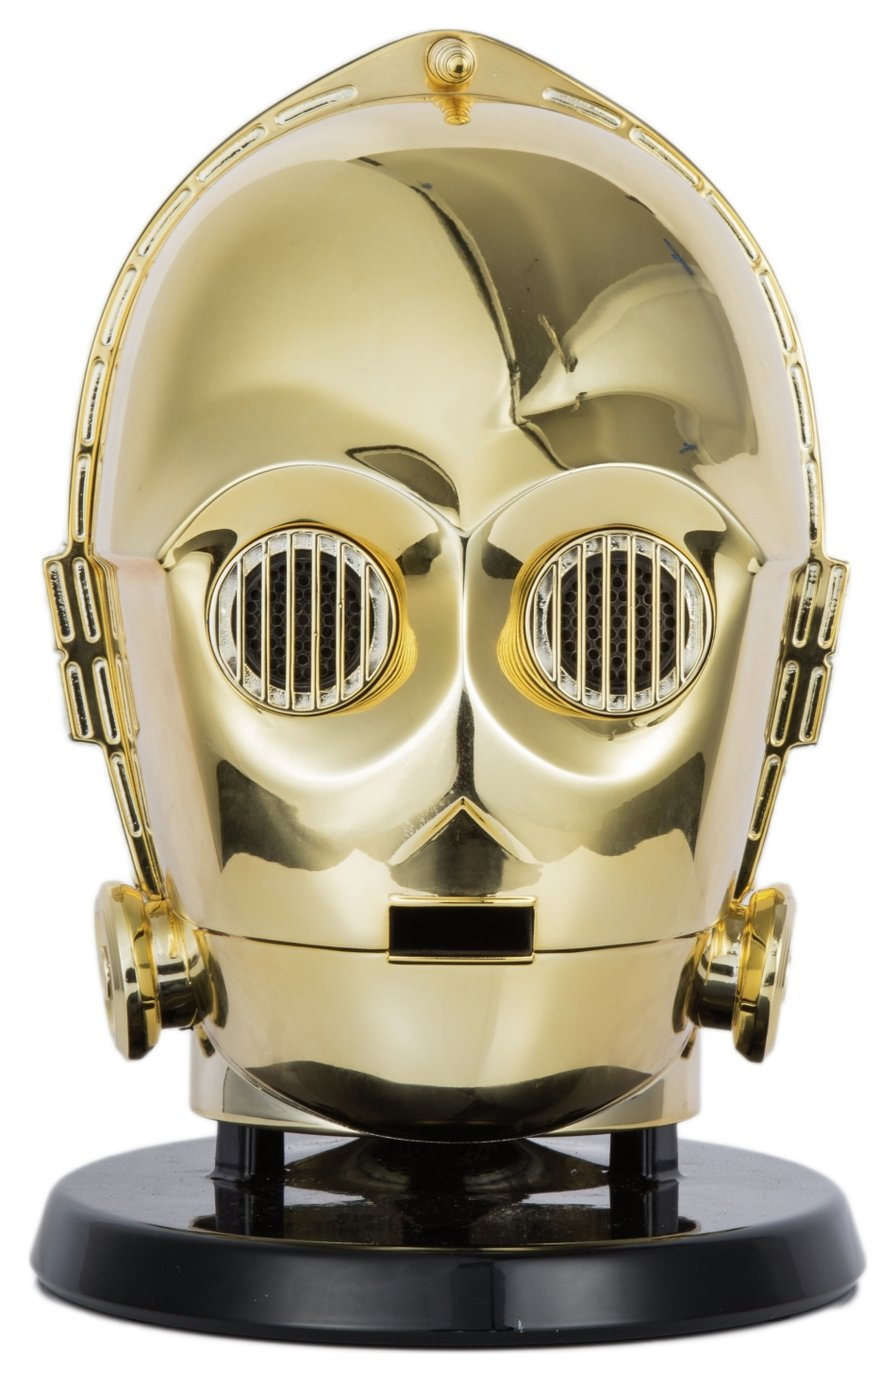 ACW Star Wars - C-3PO Wireless Speaker - Gold